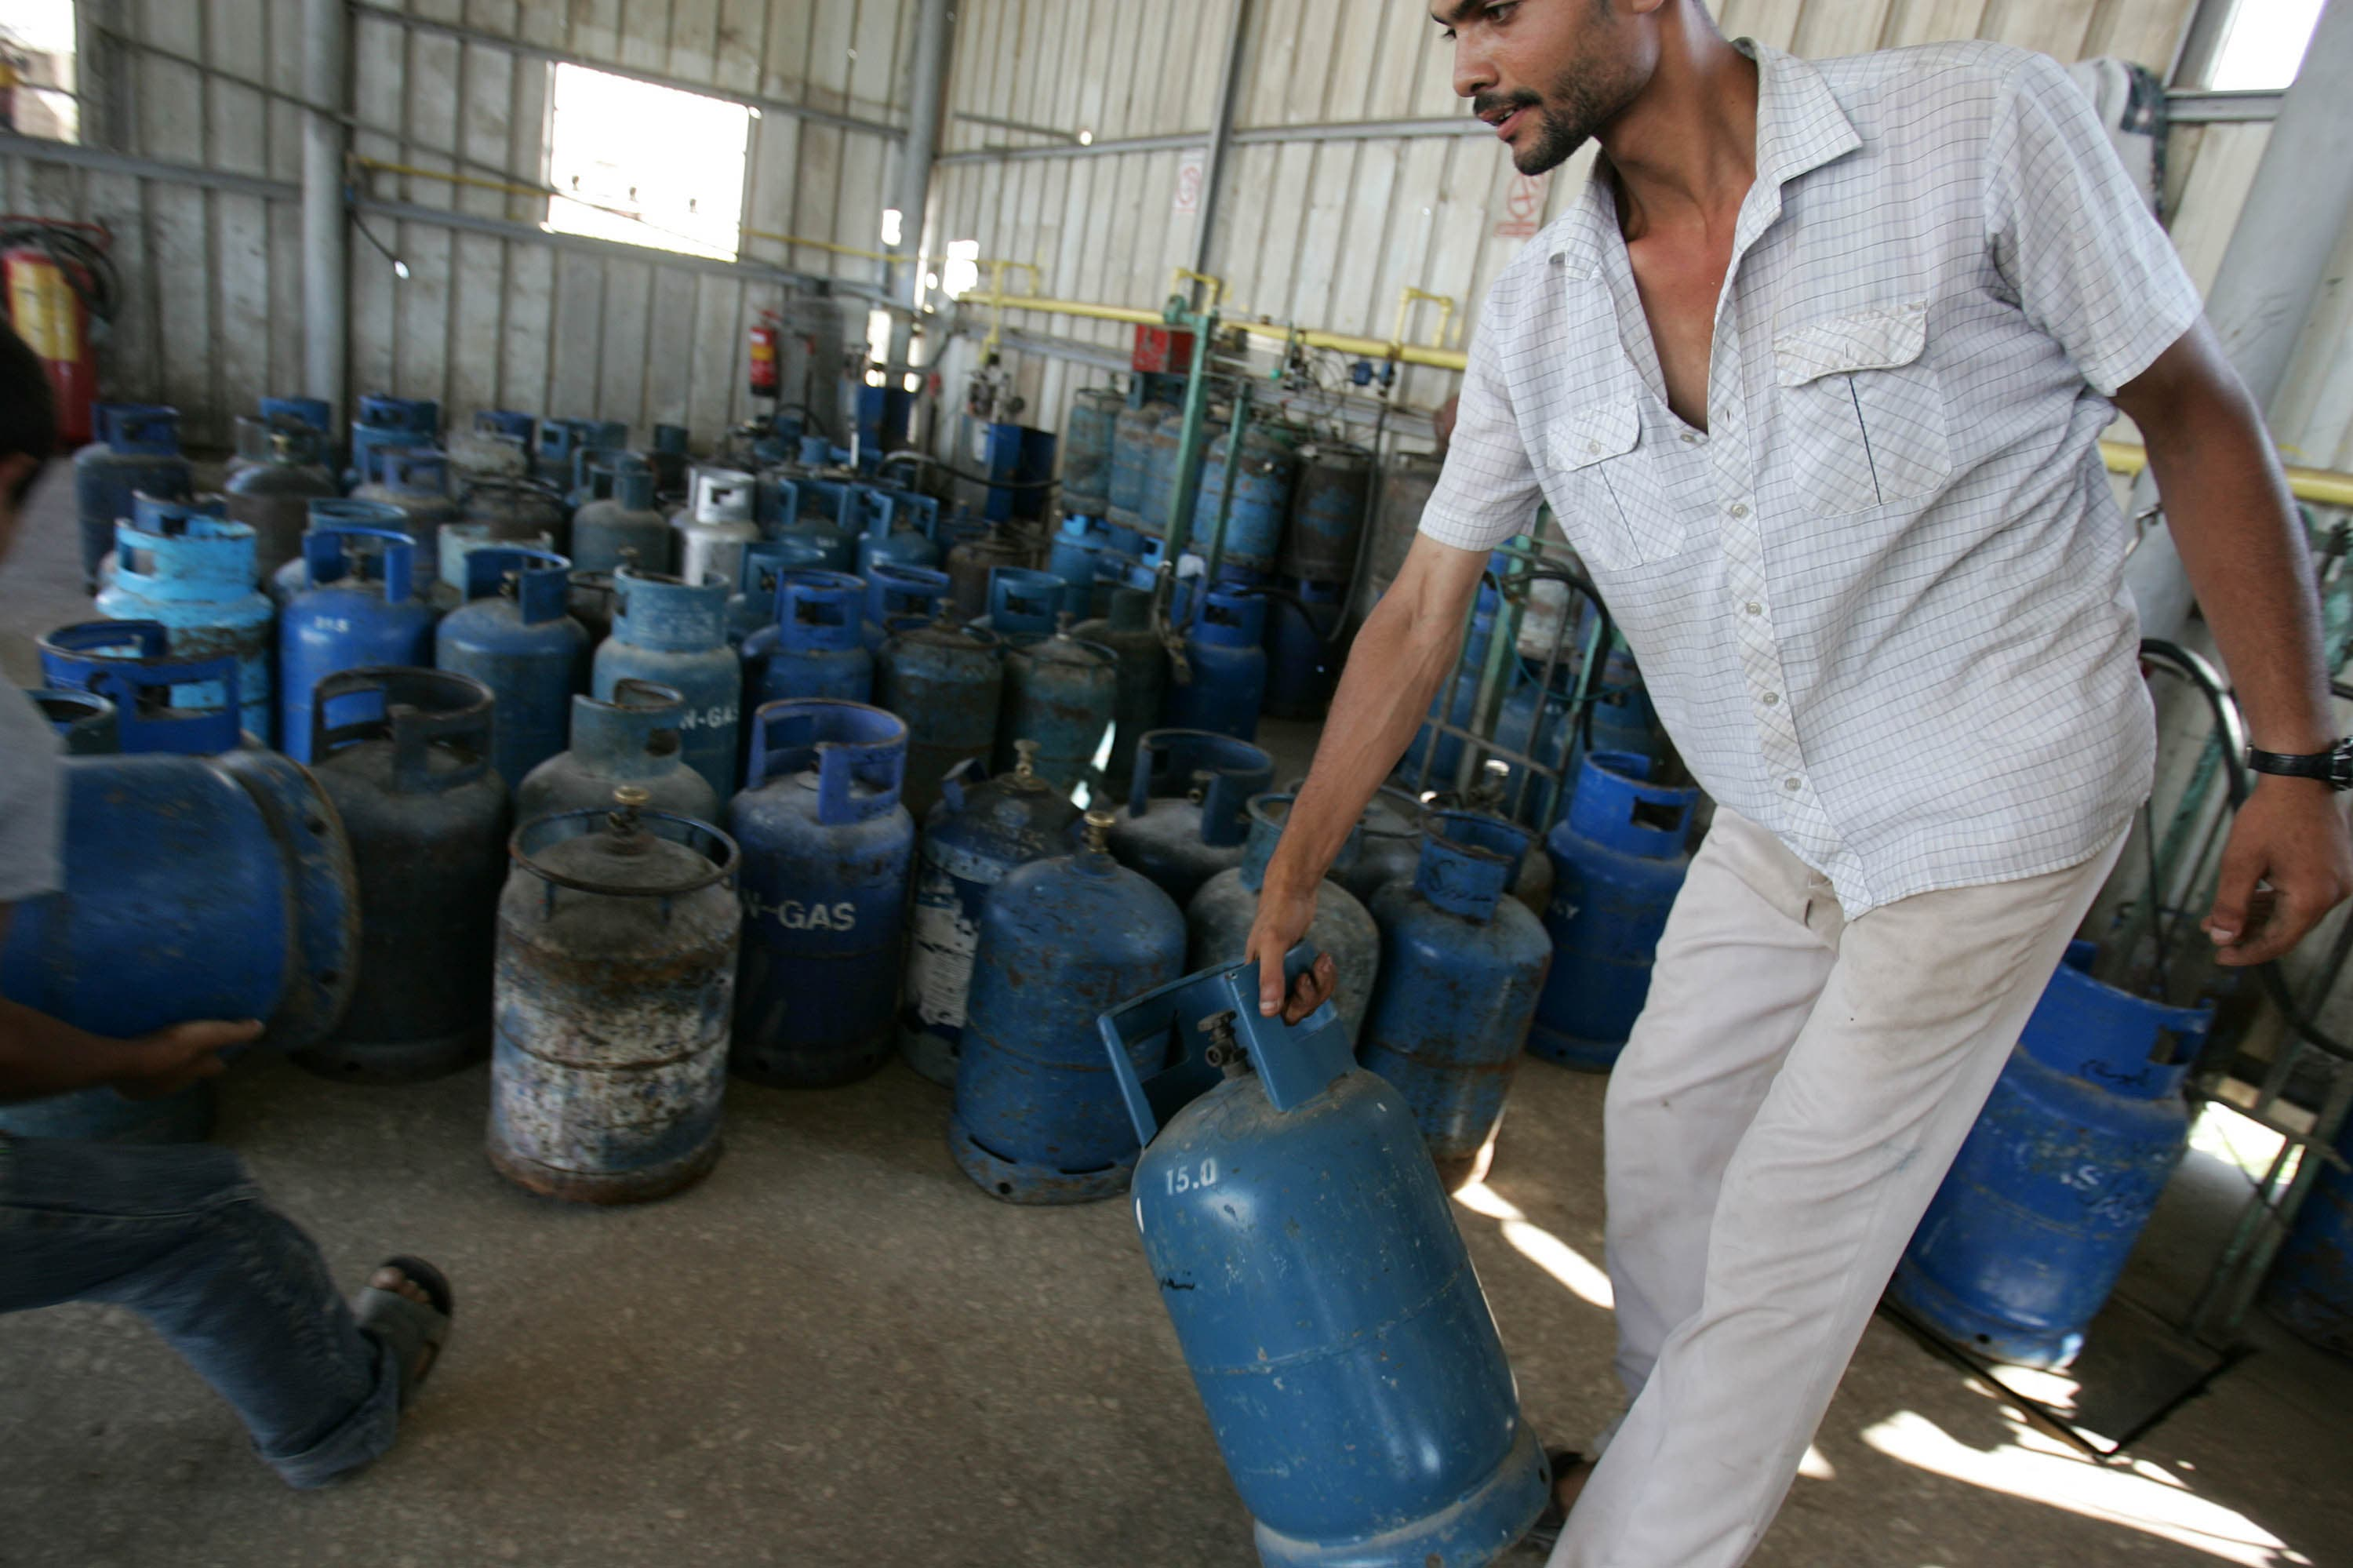 Hundreds protested in Cairo over the increase in the cost of cooking gas